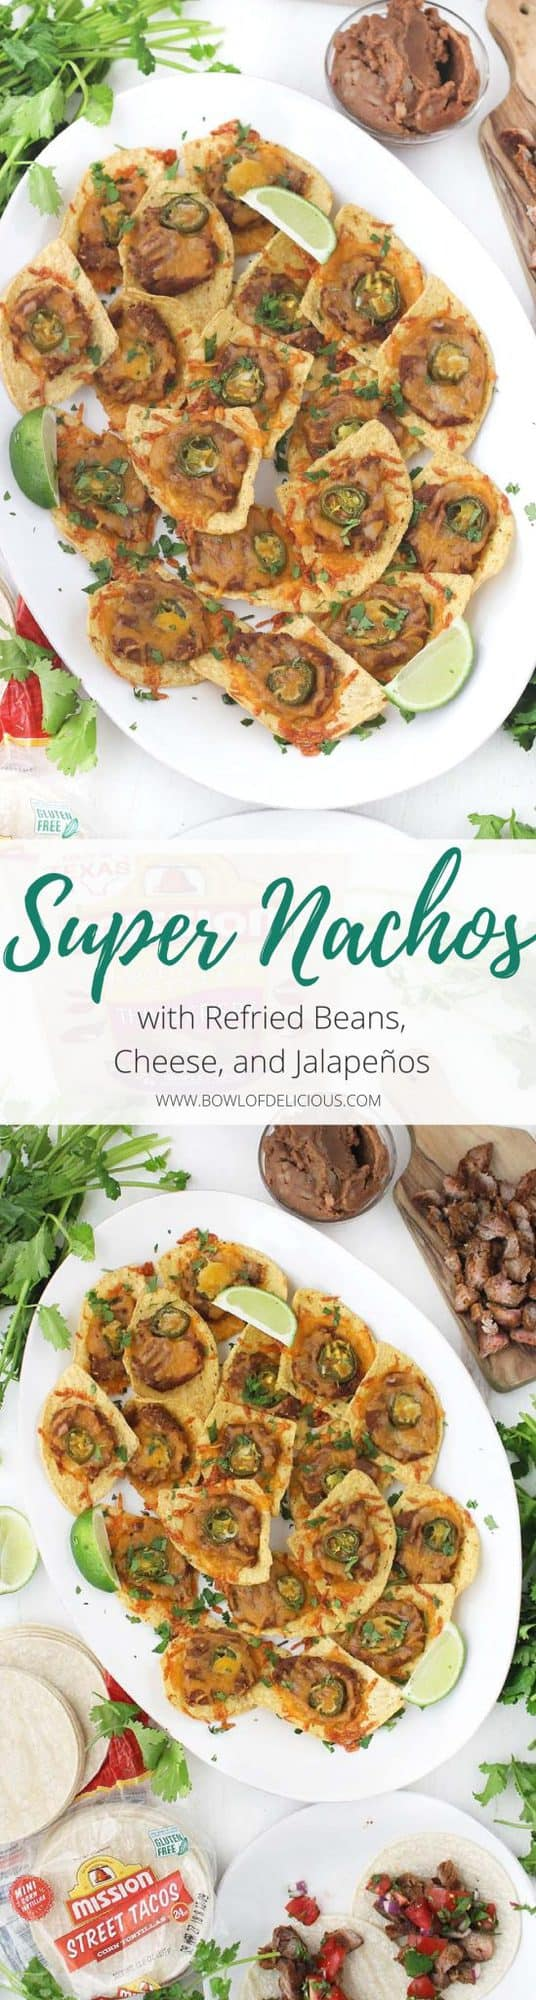 "These vegetarian ""Super"" Nachos with Refried Beans, Cheese, and Jalapeños are each topped individually and baked. They're the perfect appetizer to make for company and take only 5 minutes of prep!"